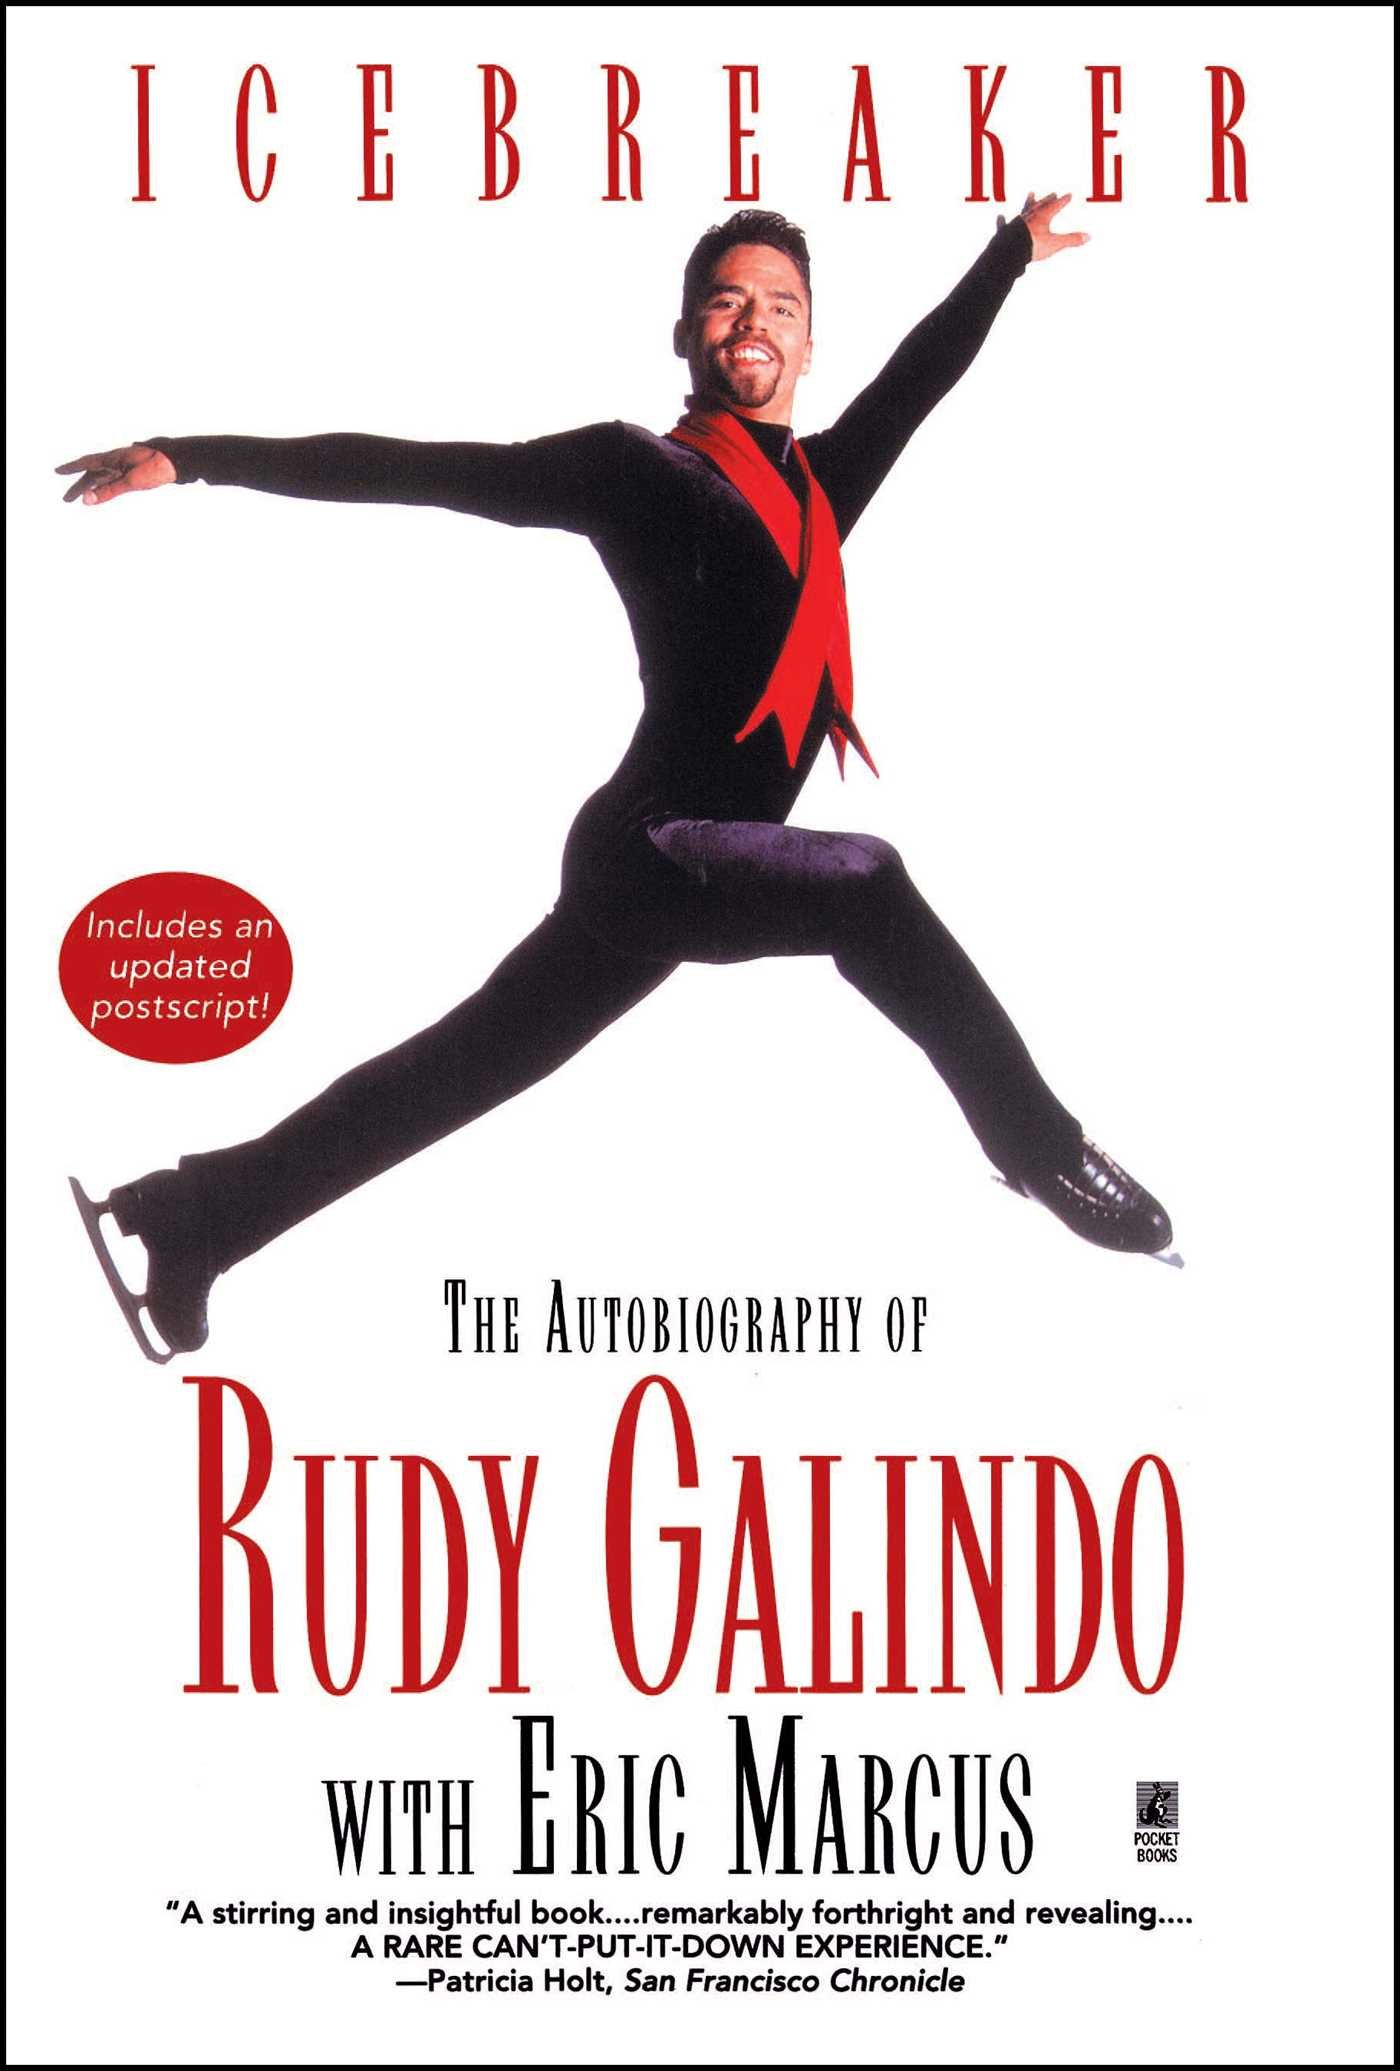 fe862645728 Icebreaker: The Autobiography of Rudy Galindo Paperback – May 1, 1998